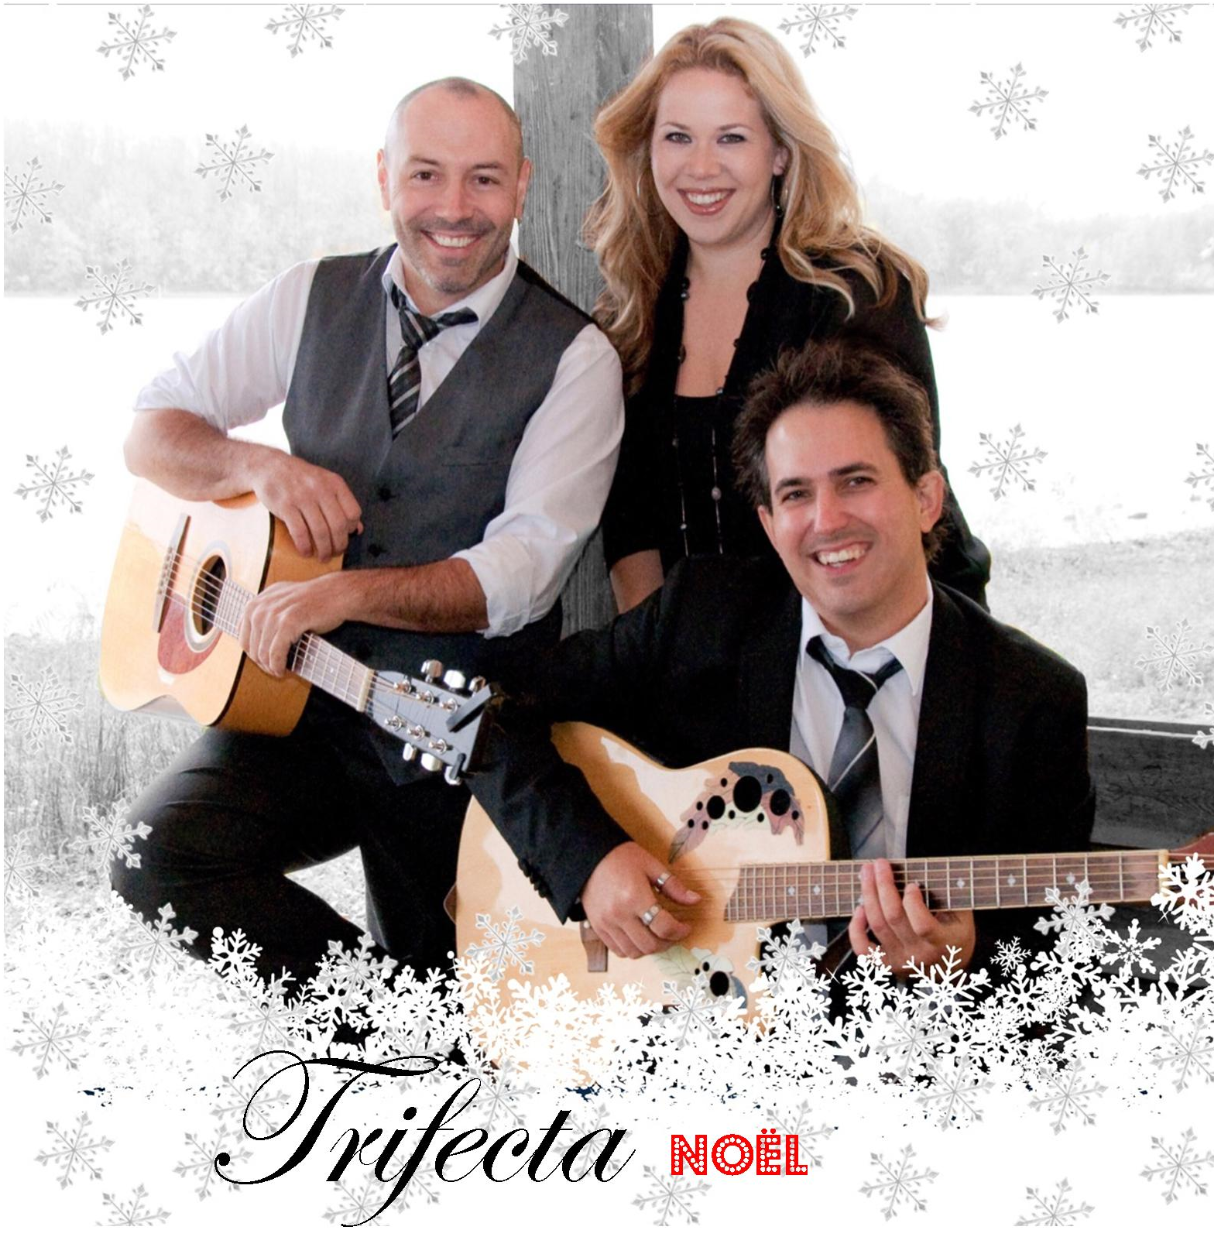 trifecta noel_edited